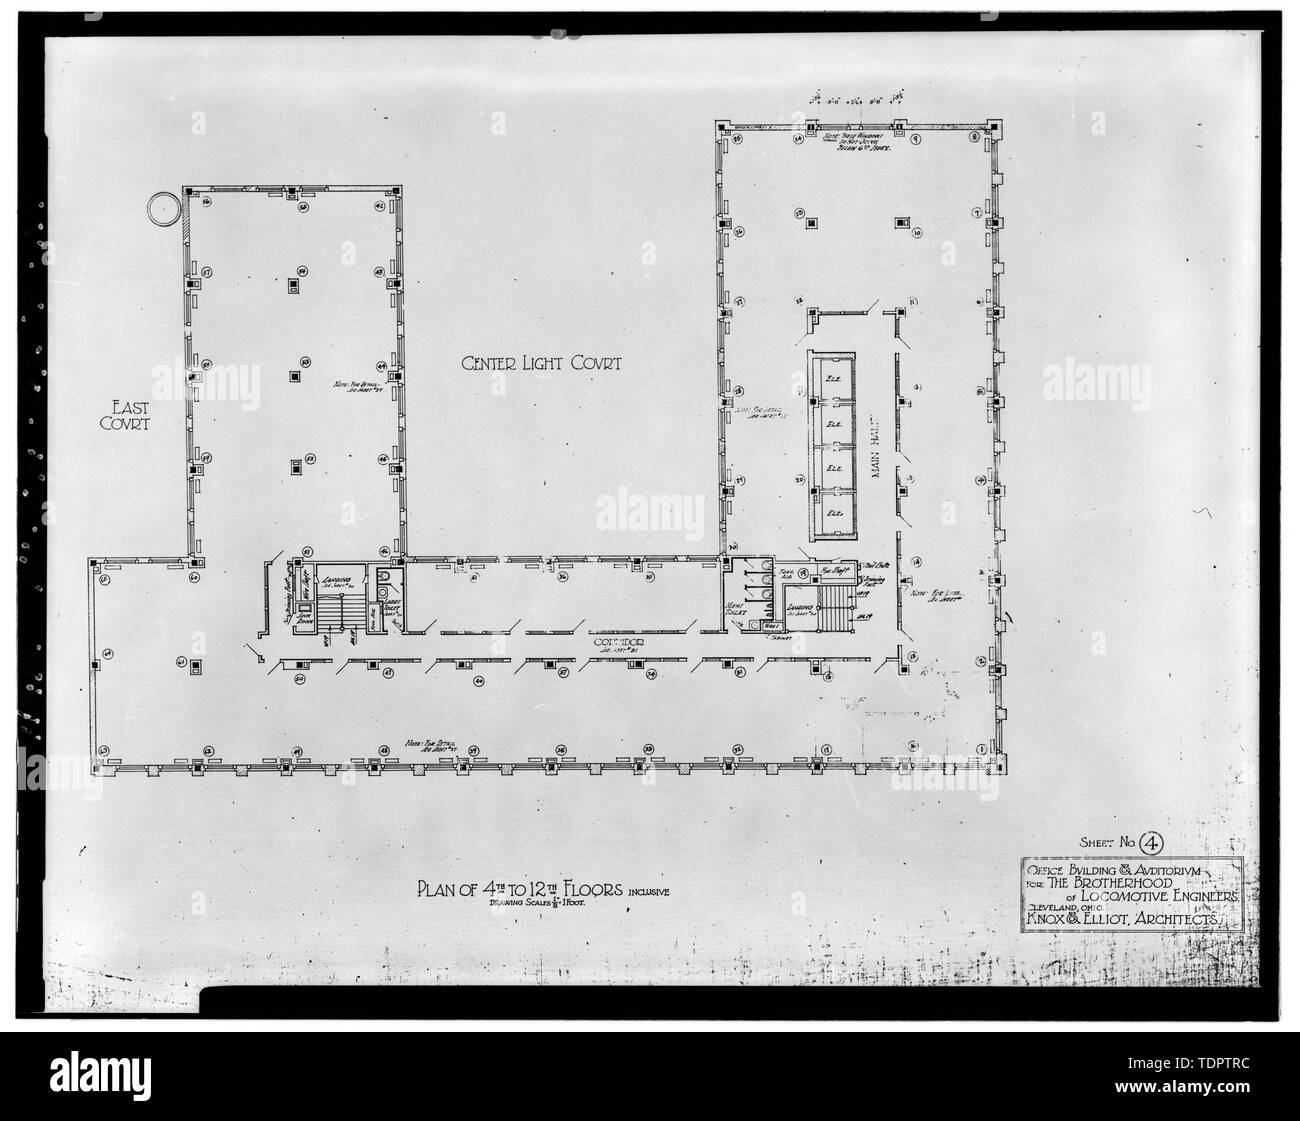 Plan of 4th to 12th Floors, Inclusive - Brotherhood of Locomotive Engineers Building, 1365 Ontario Street, Cleveland, Cuyahoga County, OH - Stock Image